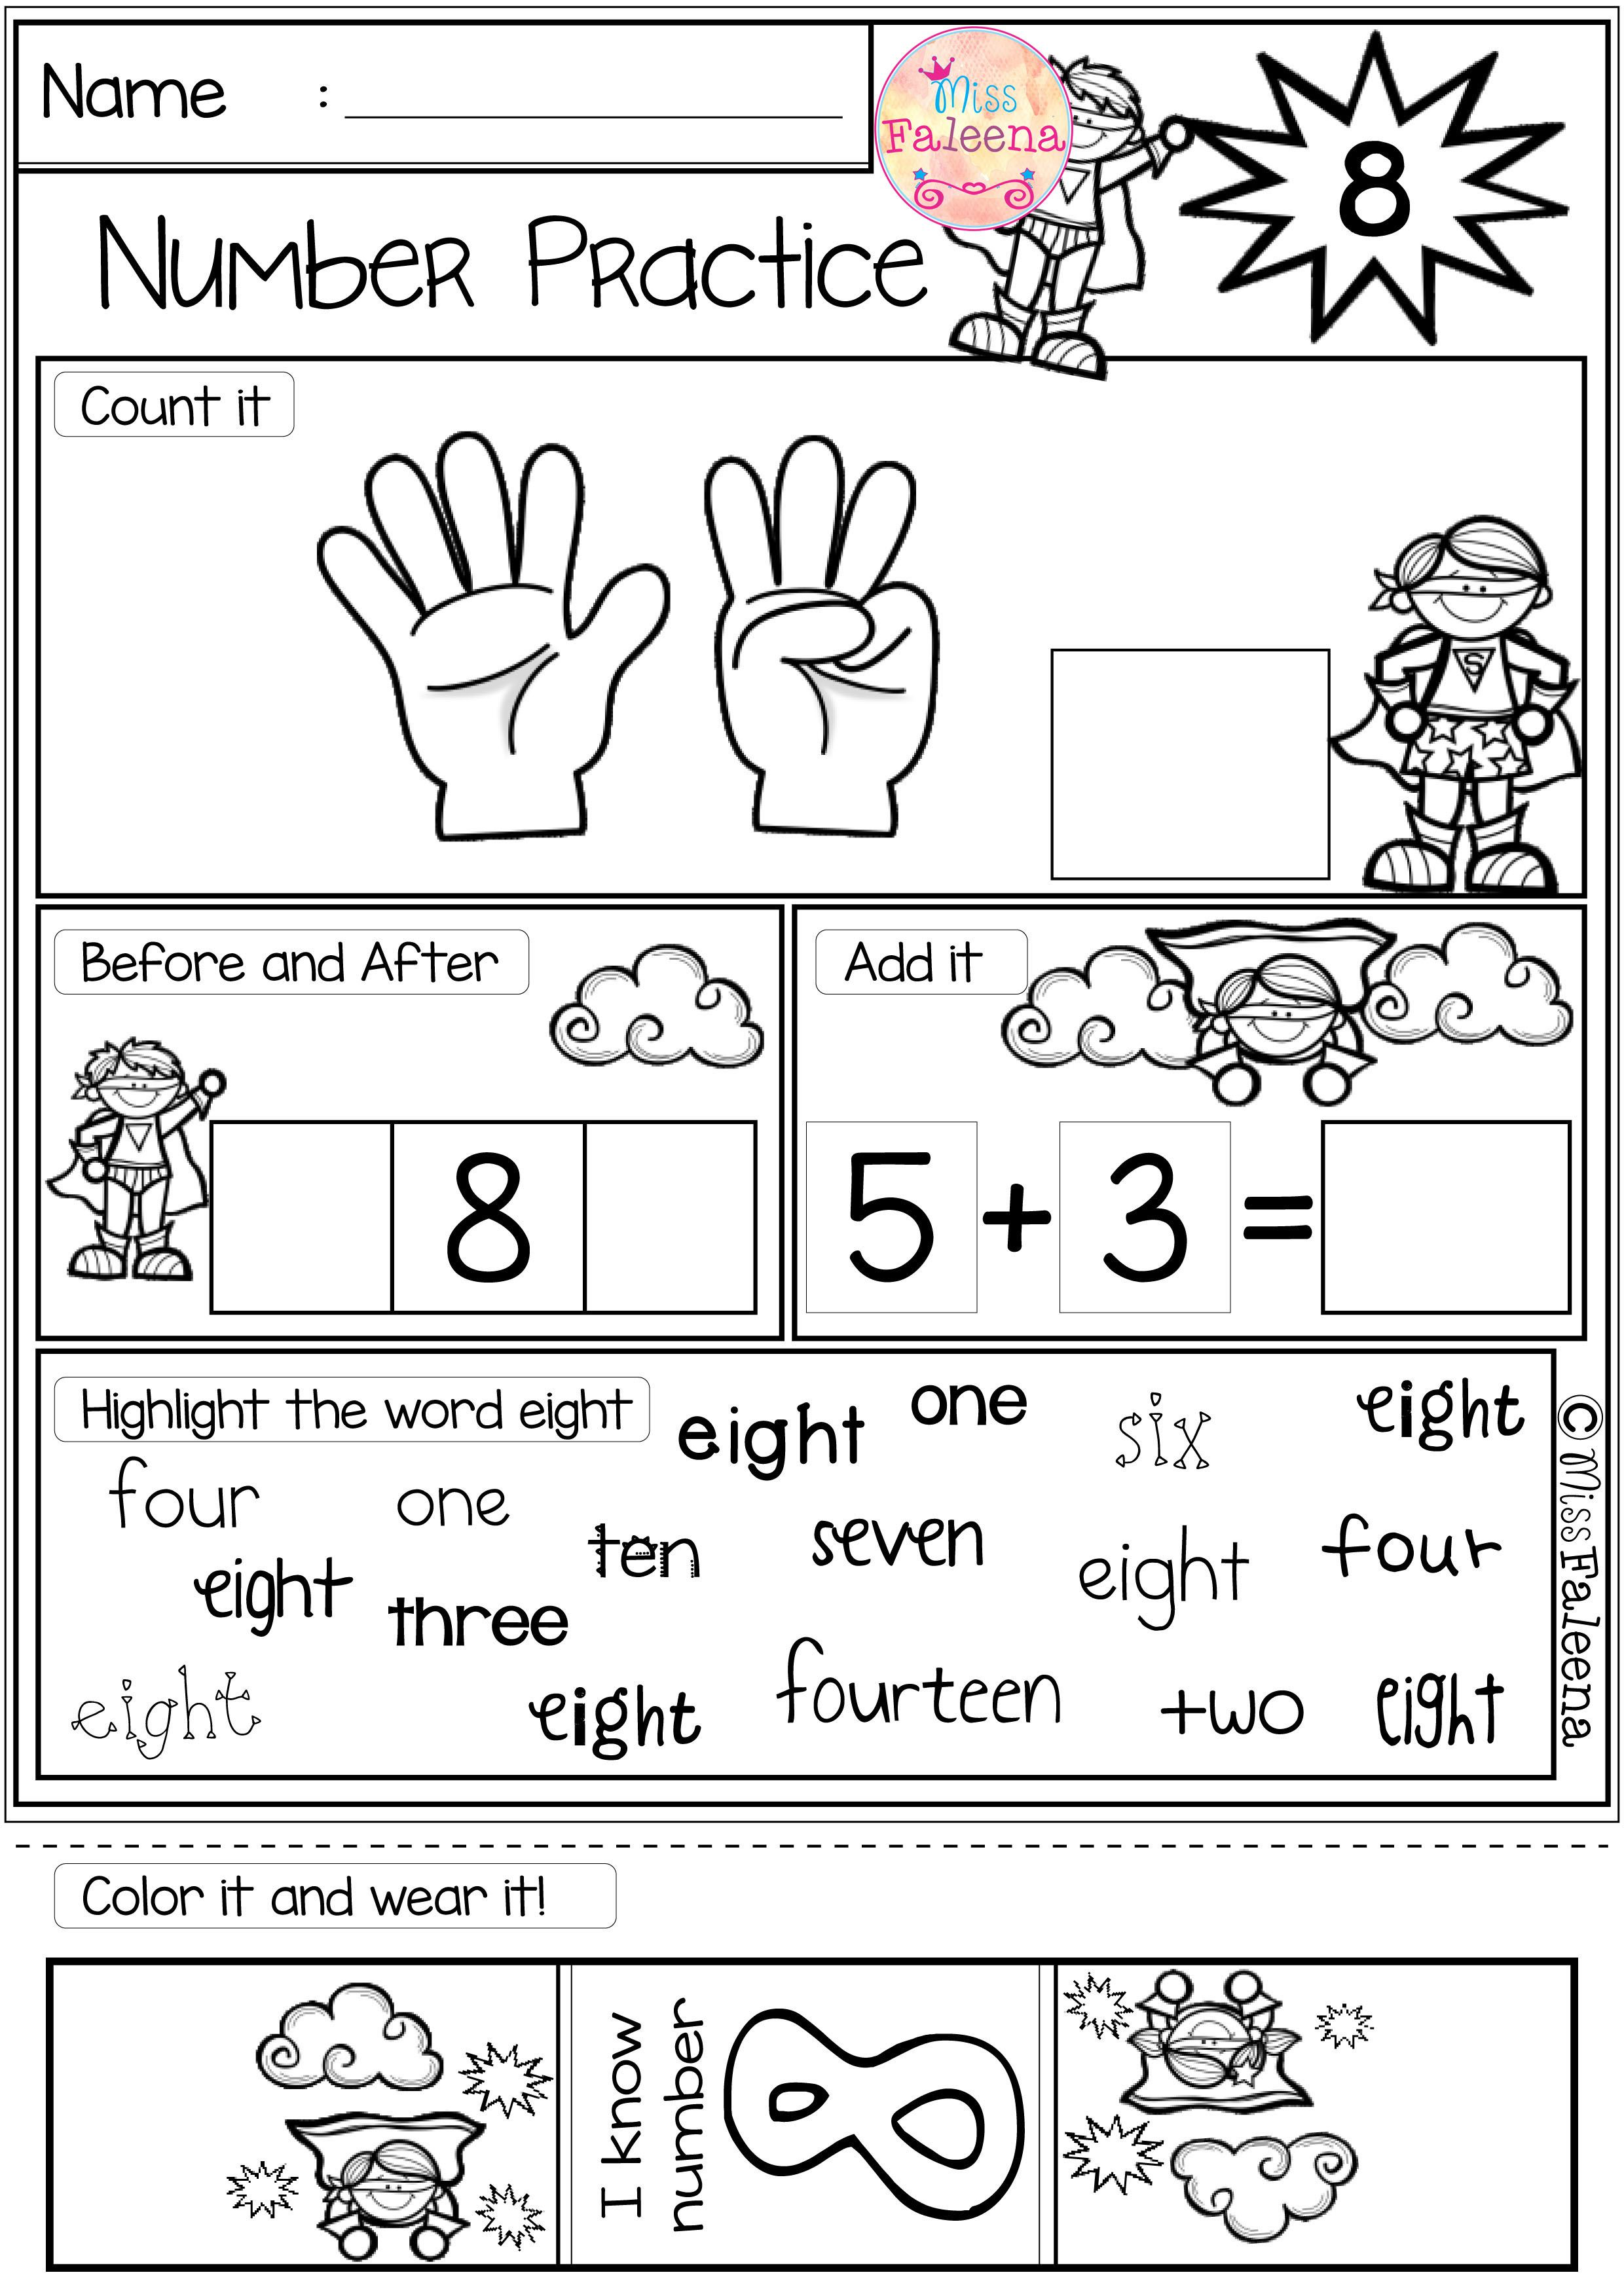 There Are 20 Pages 1 20 Number Practice Worksheets In This Product Also Inclu Kindergarten Math Worksheets Numbers Kindergarten Number Worksheets Kindergarten [ 3507 x 2480 Pixel ]